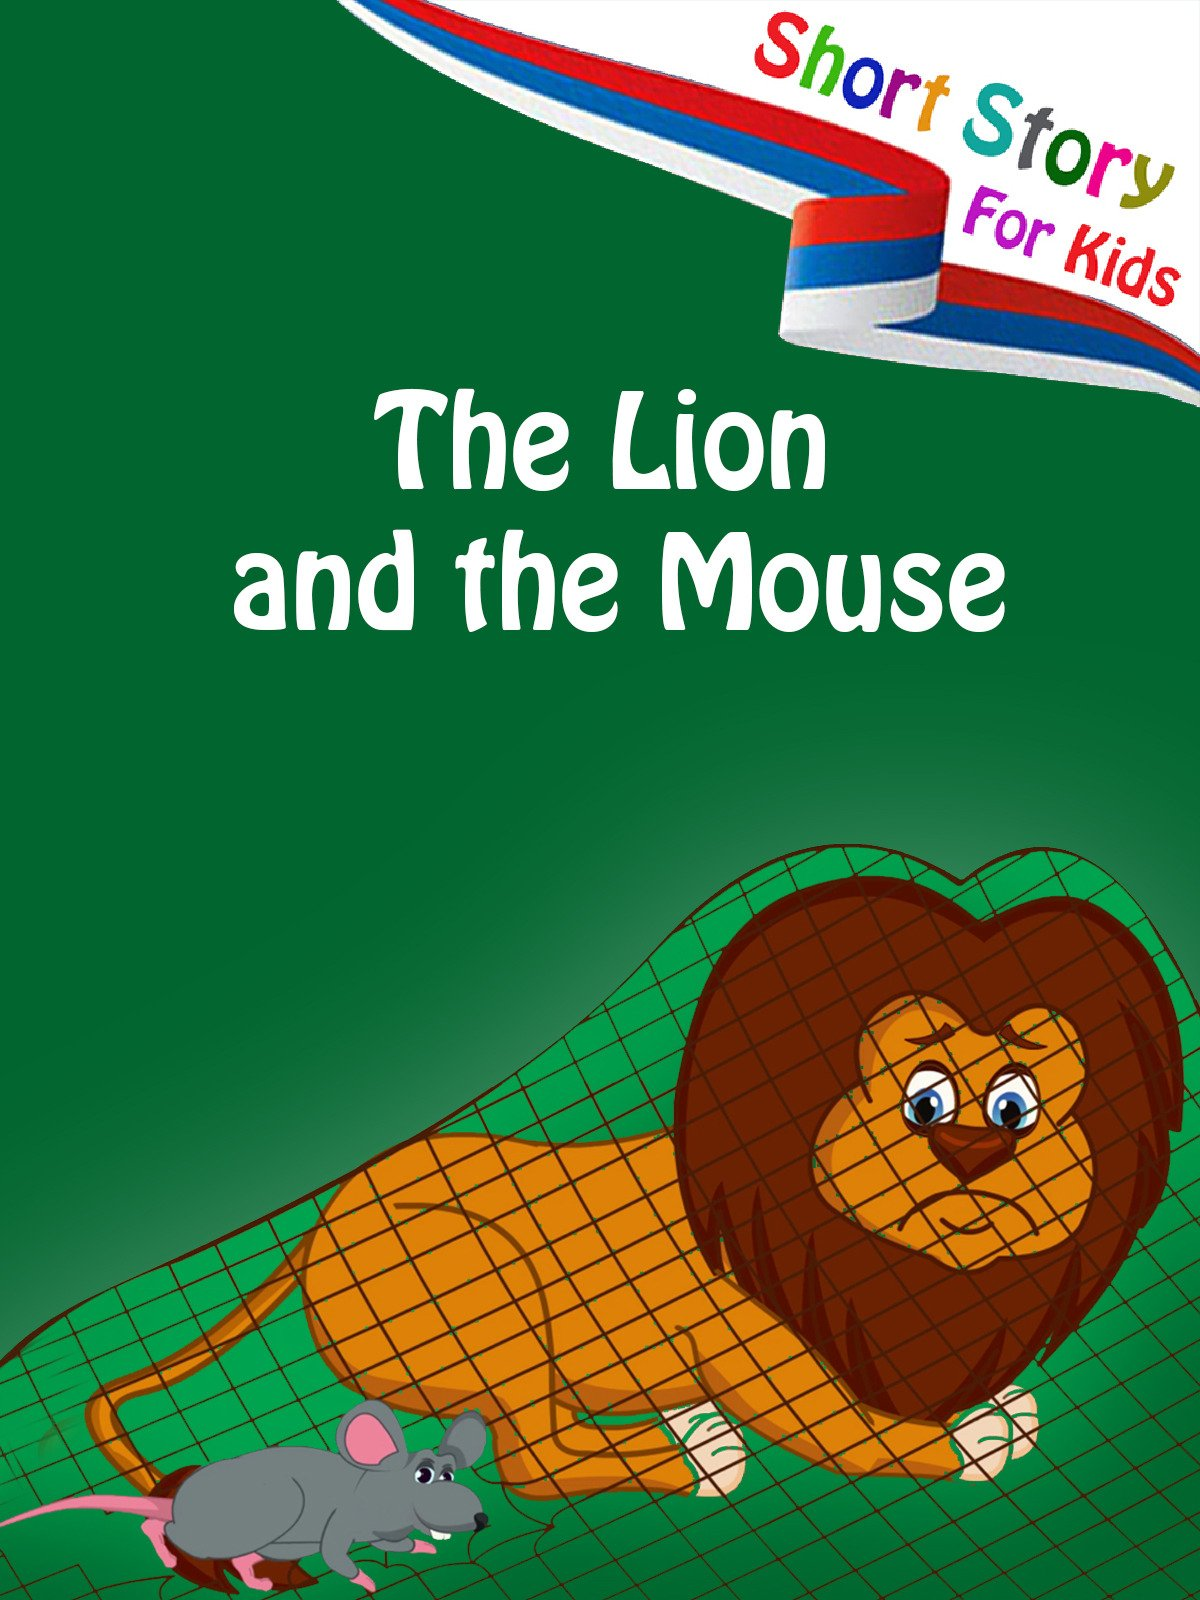 Amazon com: Watch Short Stories for Kids - The lion and the